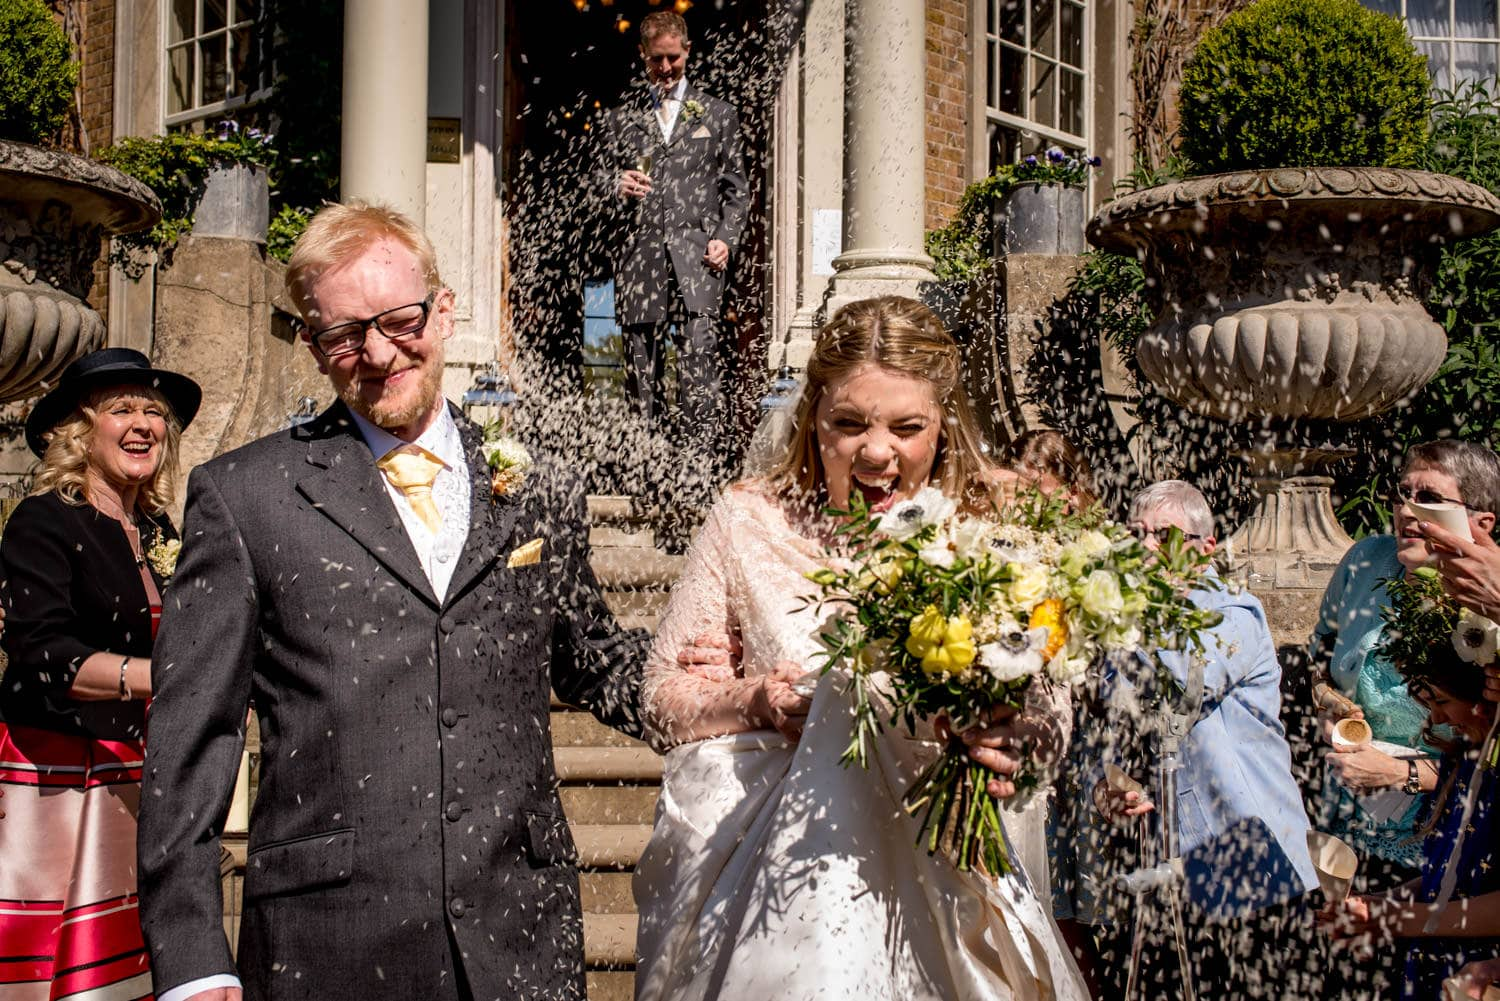 rice confetti being thrown at the couple at their wedding at Hampton Court House, London.